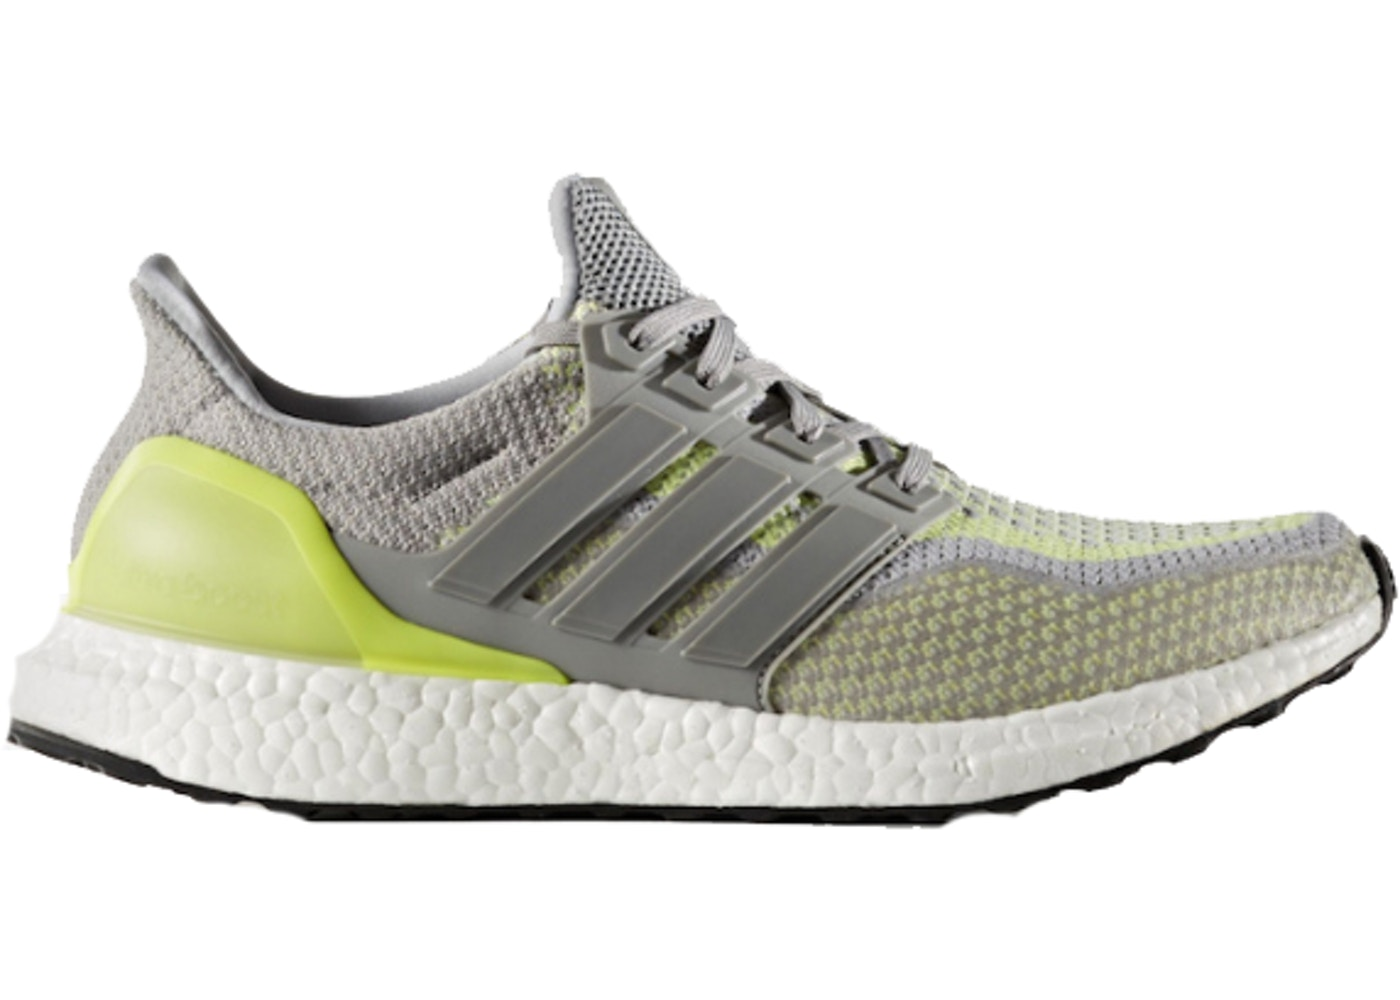 b261a7f50d2 adidas Ultra Boost 2.0 ATR Glow in the Dark - BB4145